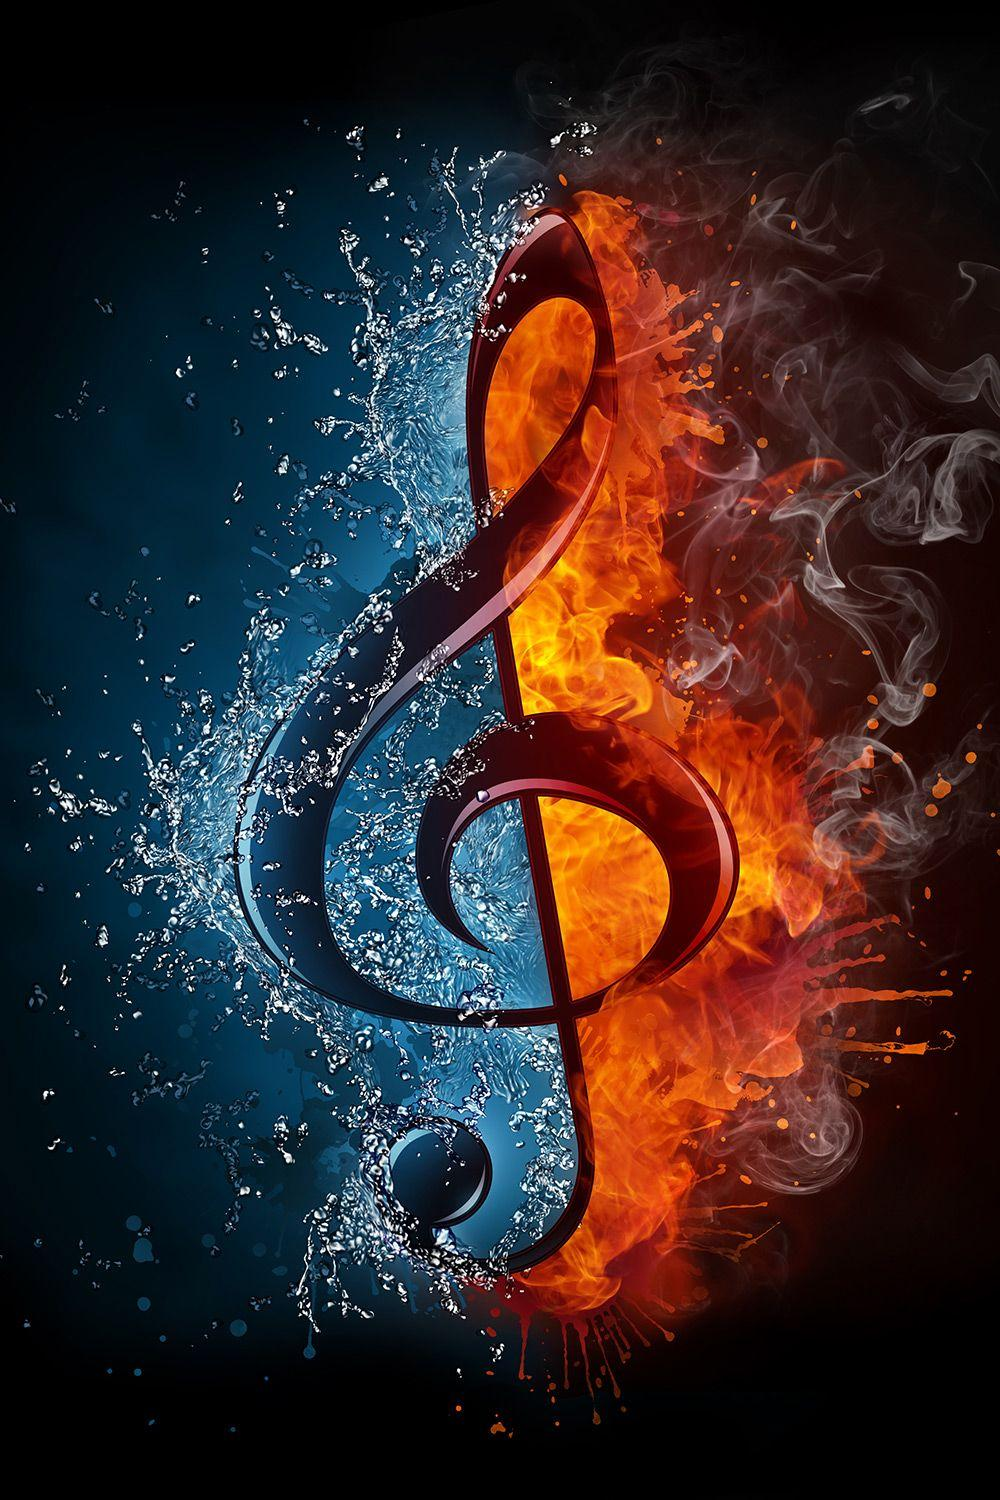 Musical Symbols Wallpapers - Wallpaper Cave